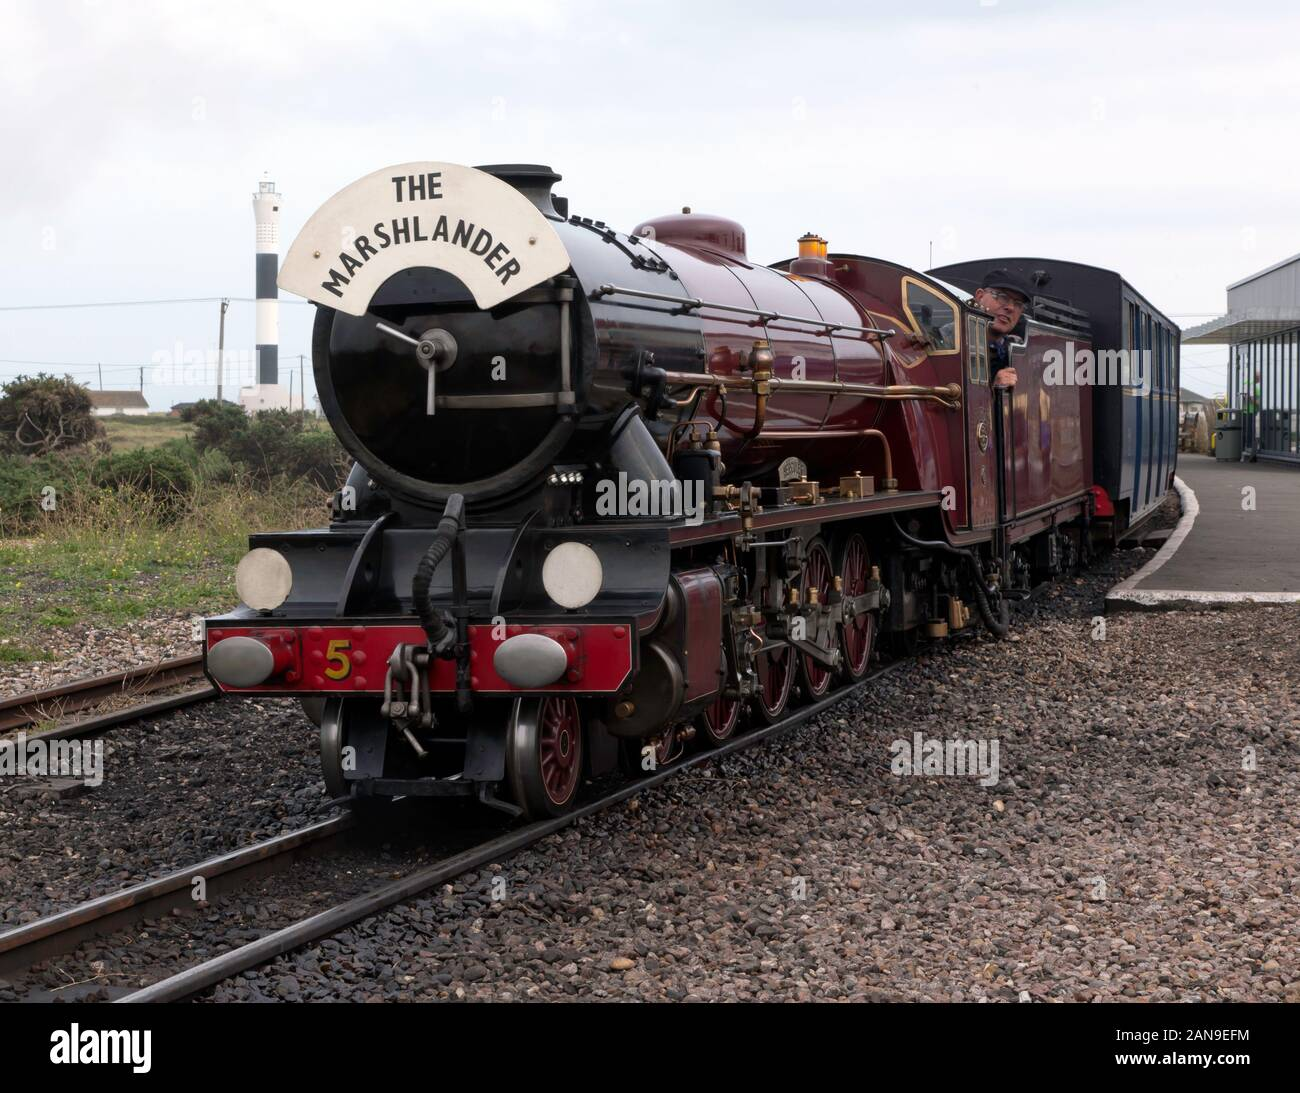 Mountain-type locomotive, Hercules, pulling a passenger train out of Dungeness Station, on the Romney, Hythe & Dymchurch Railway Stock Photo